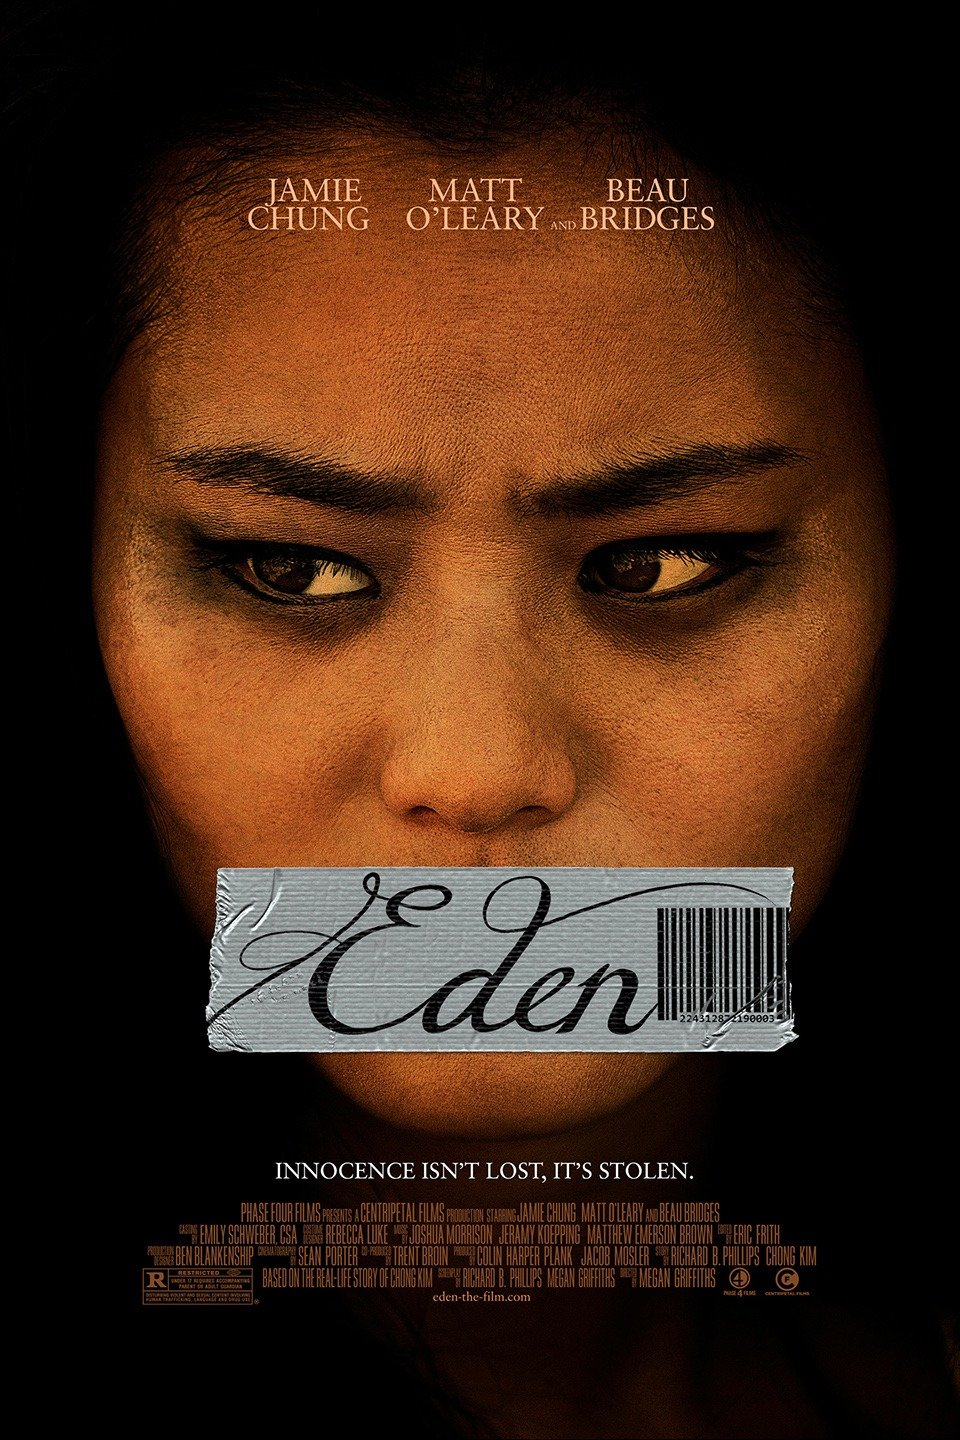 The poster of Eden movie (Photo from French Institute official website)